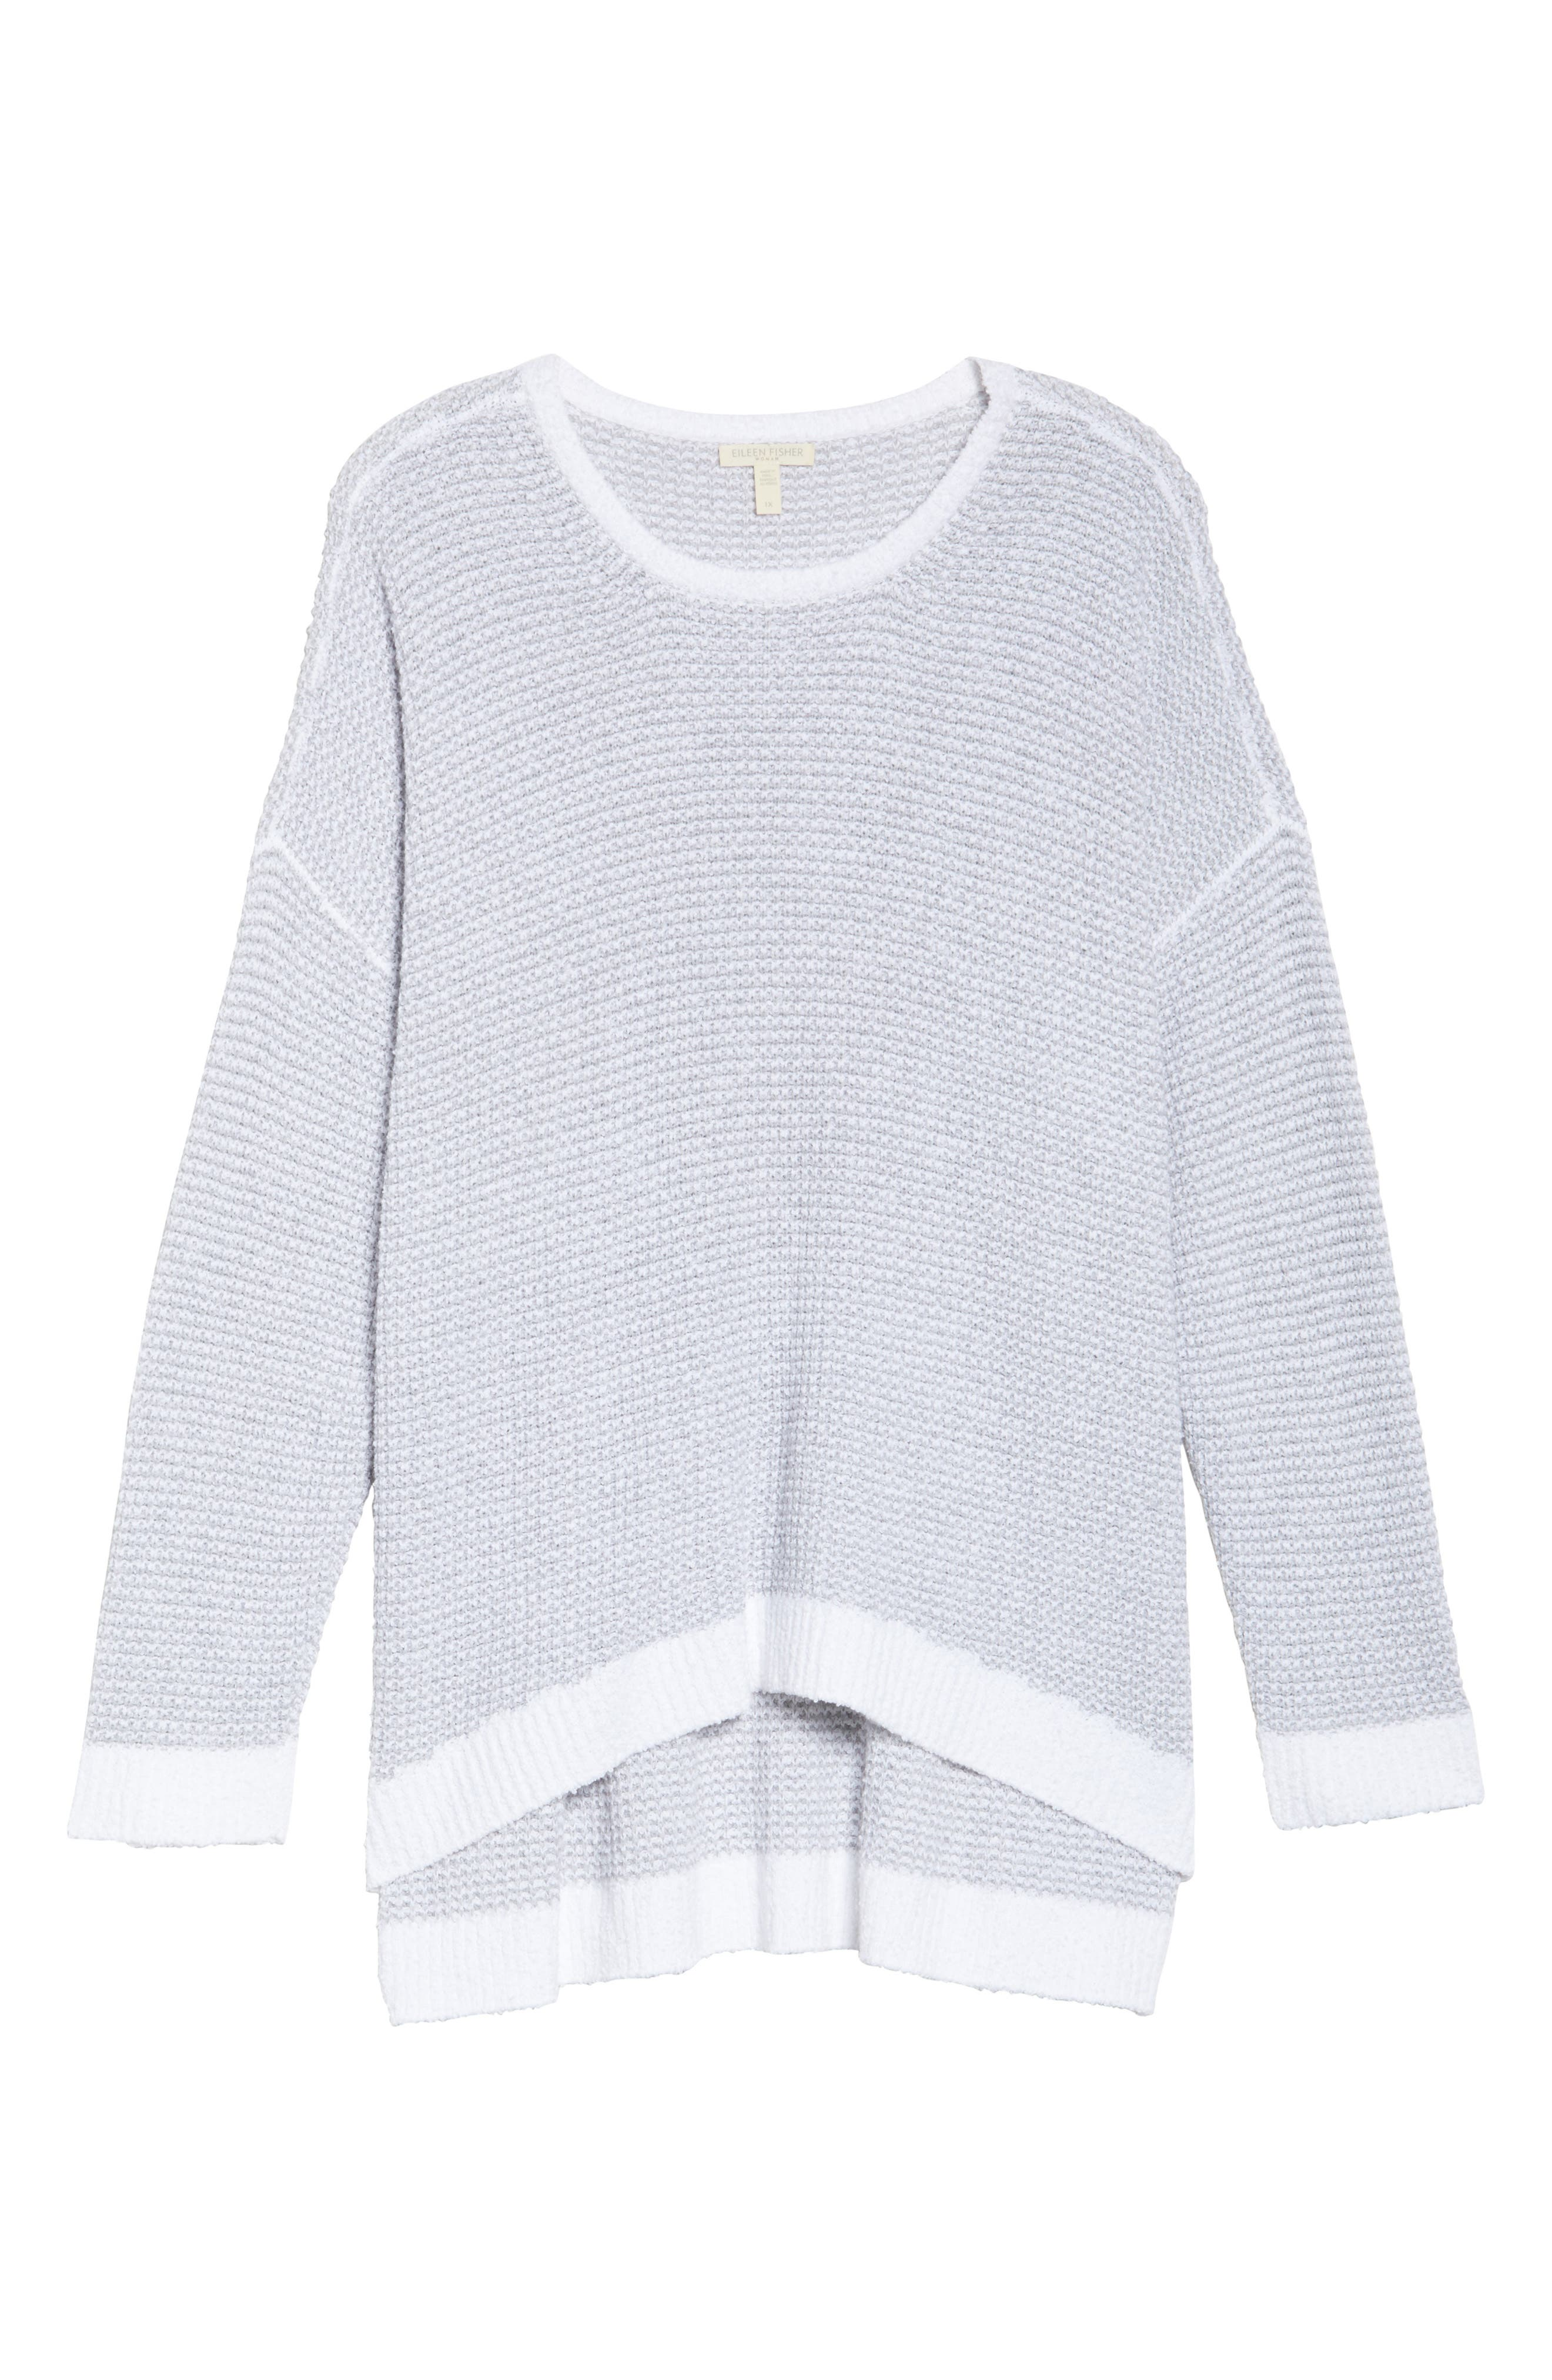 Waffled Organic Cotton Sweater,                             Alternate thumbnail 6, color,